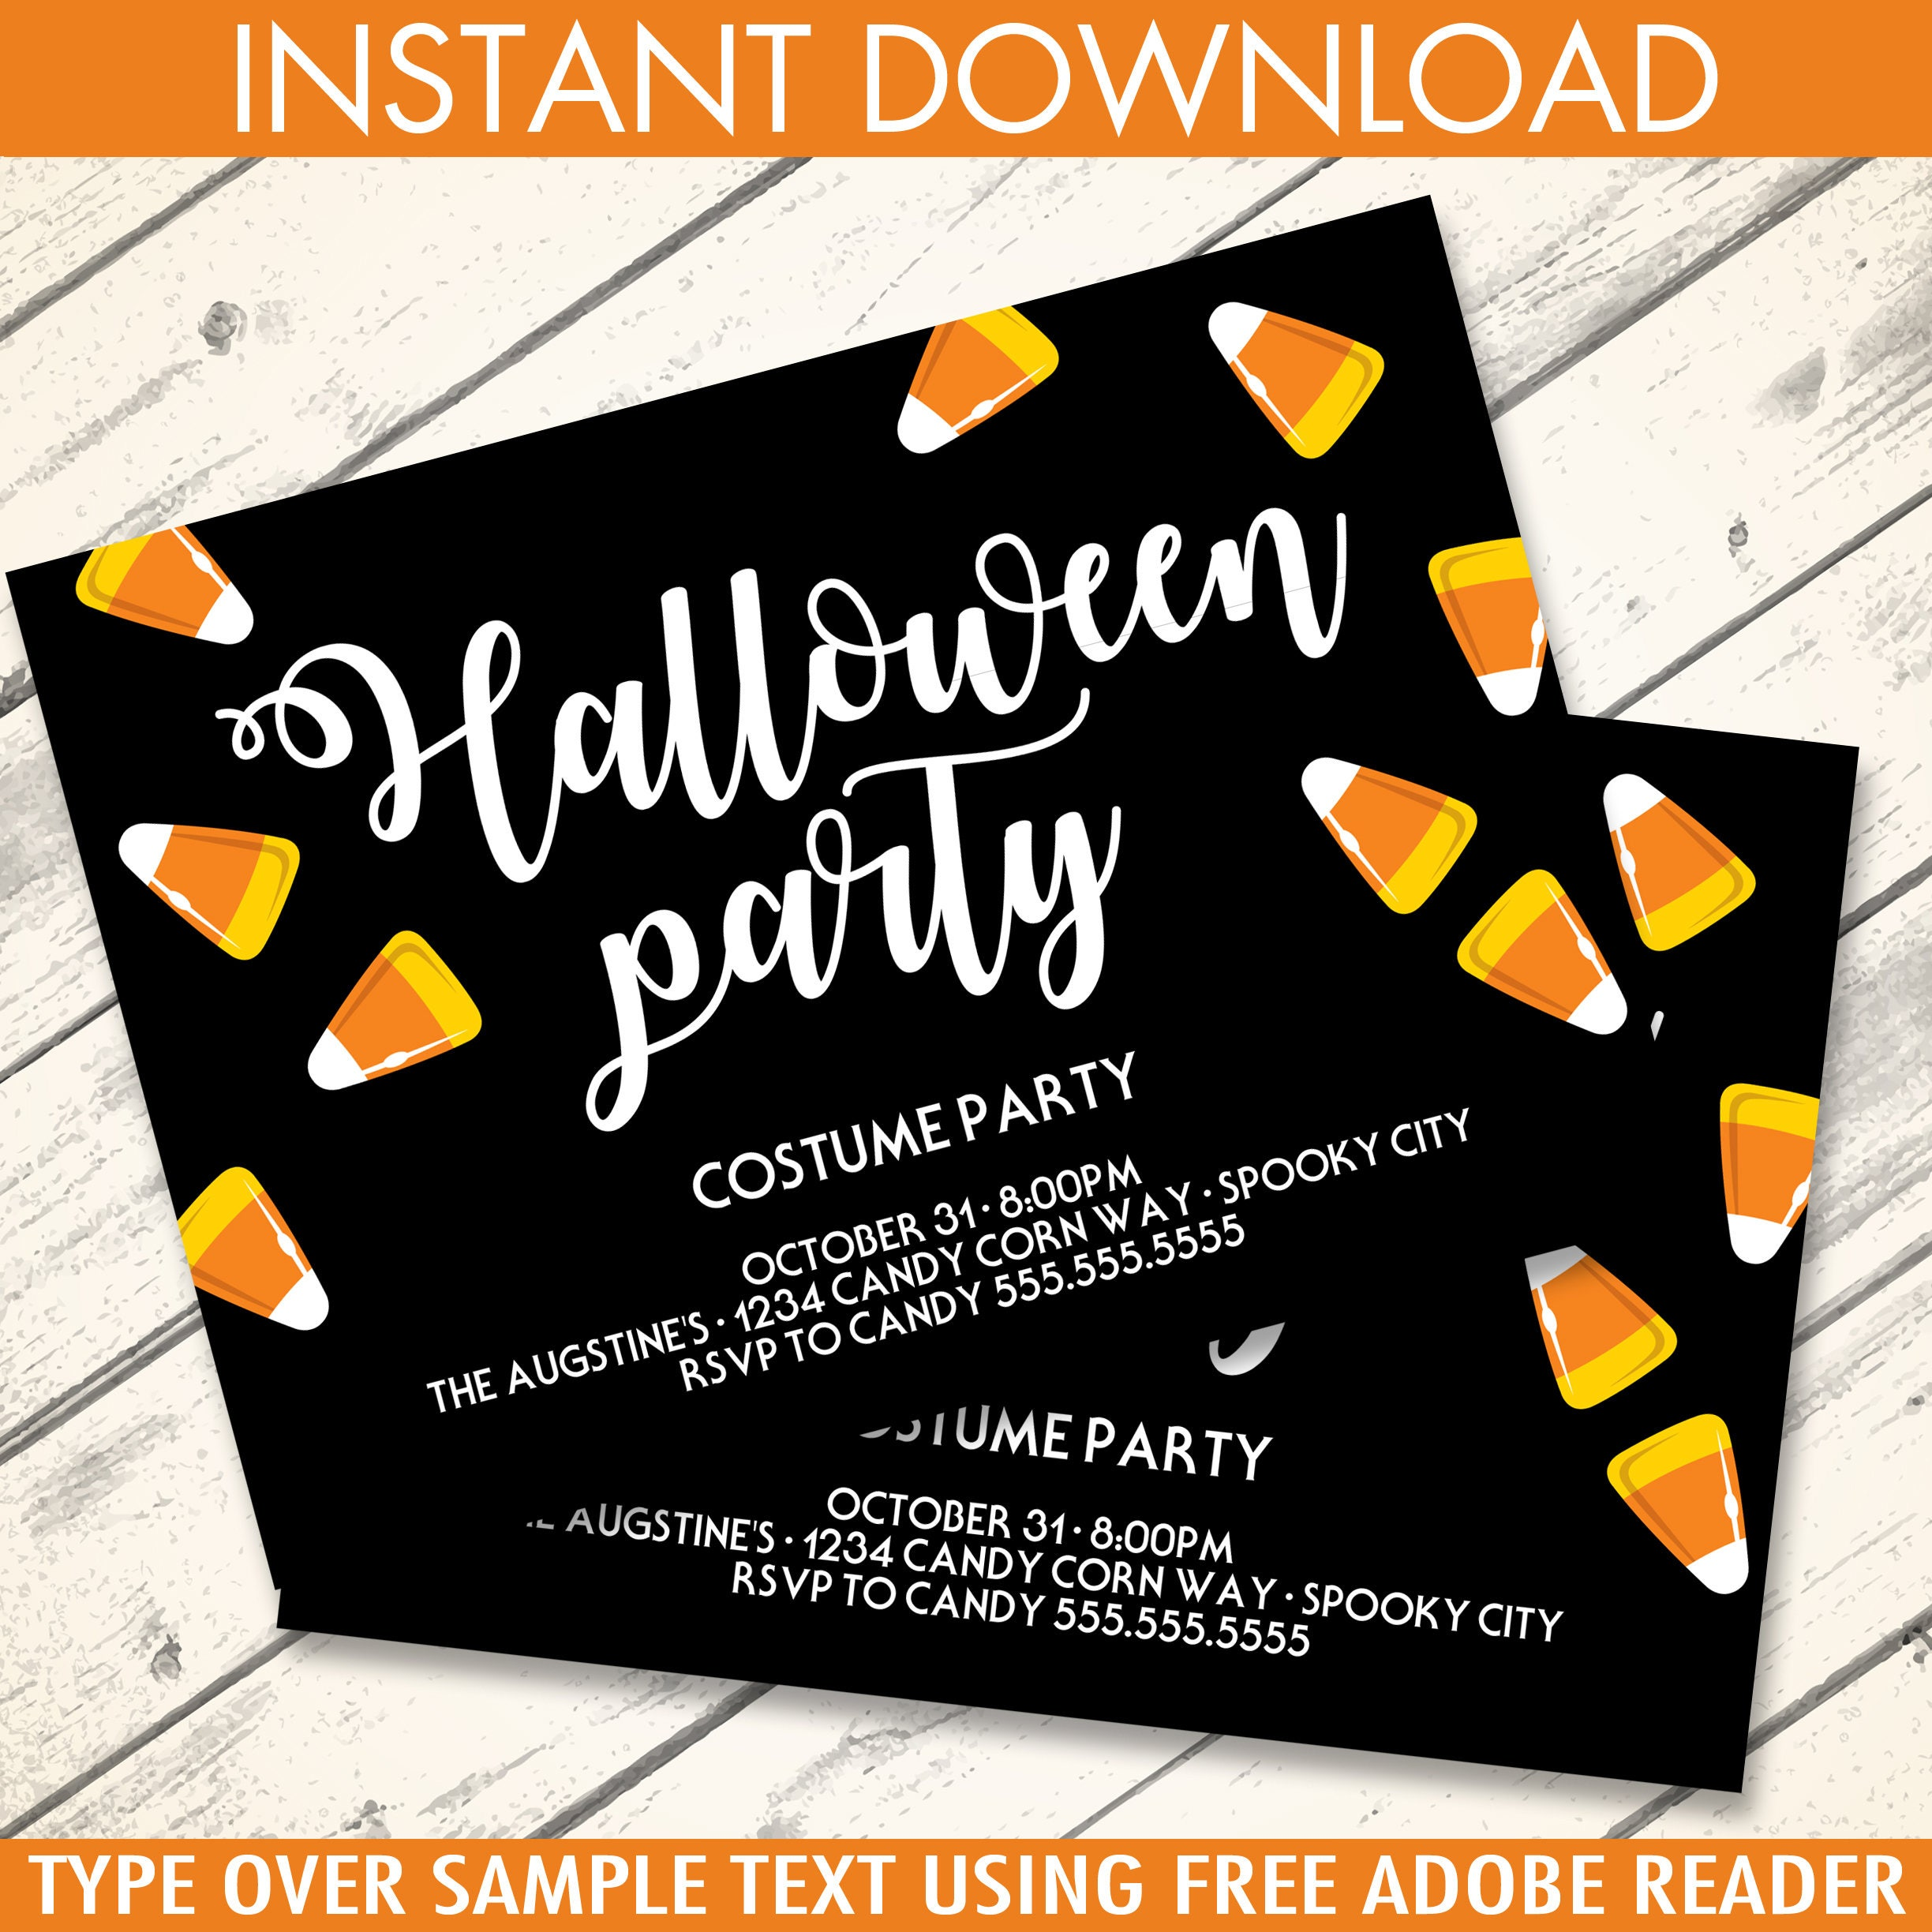 Candy Corn Halloween Party Invitation - Pumpkin Carving Party ...